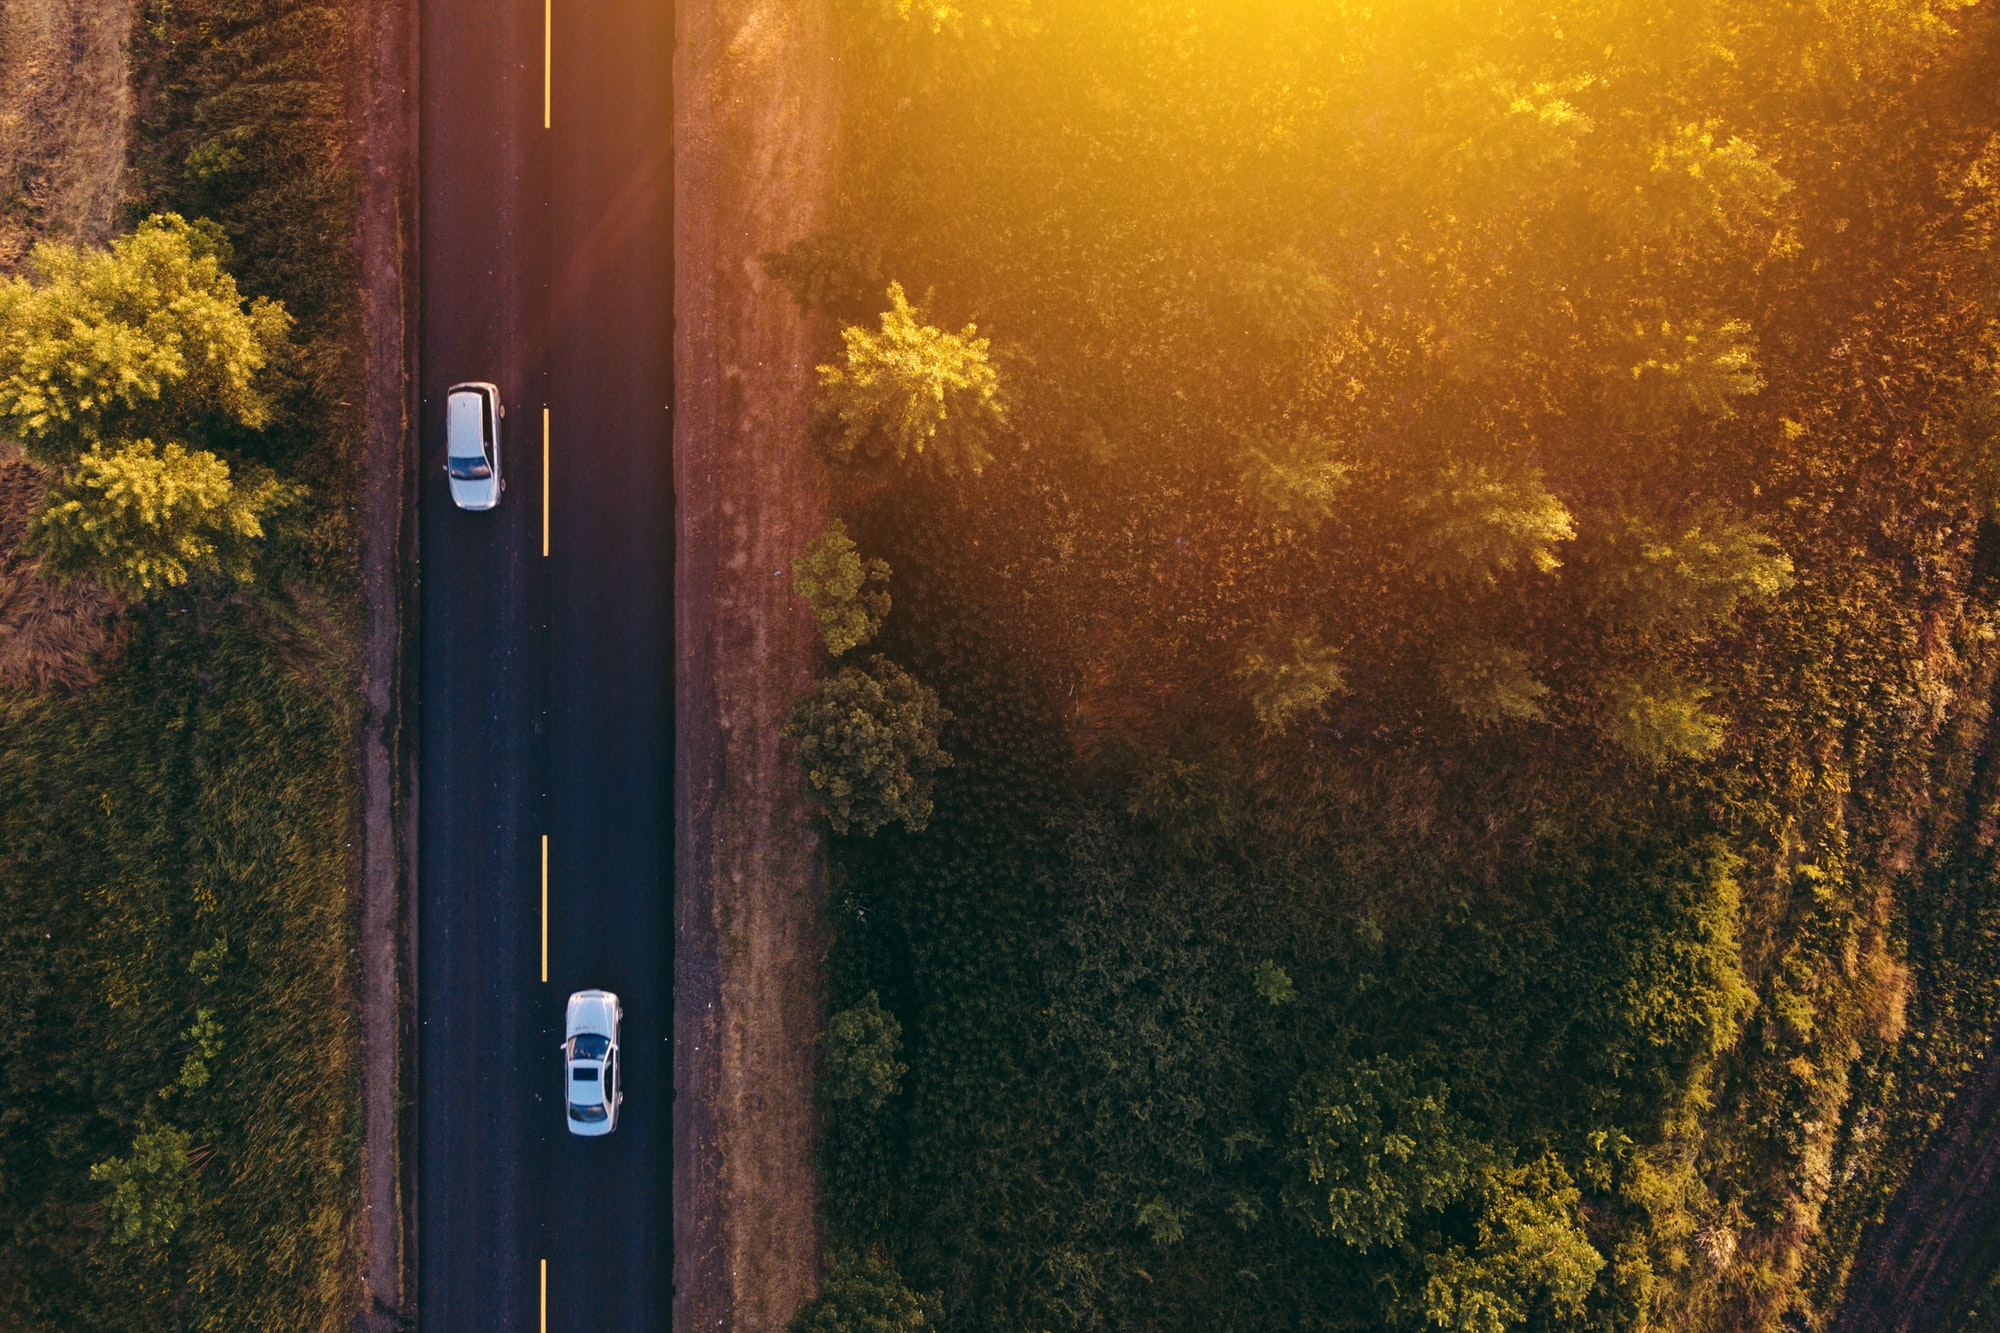 Aerial view of cars on the road in sunset